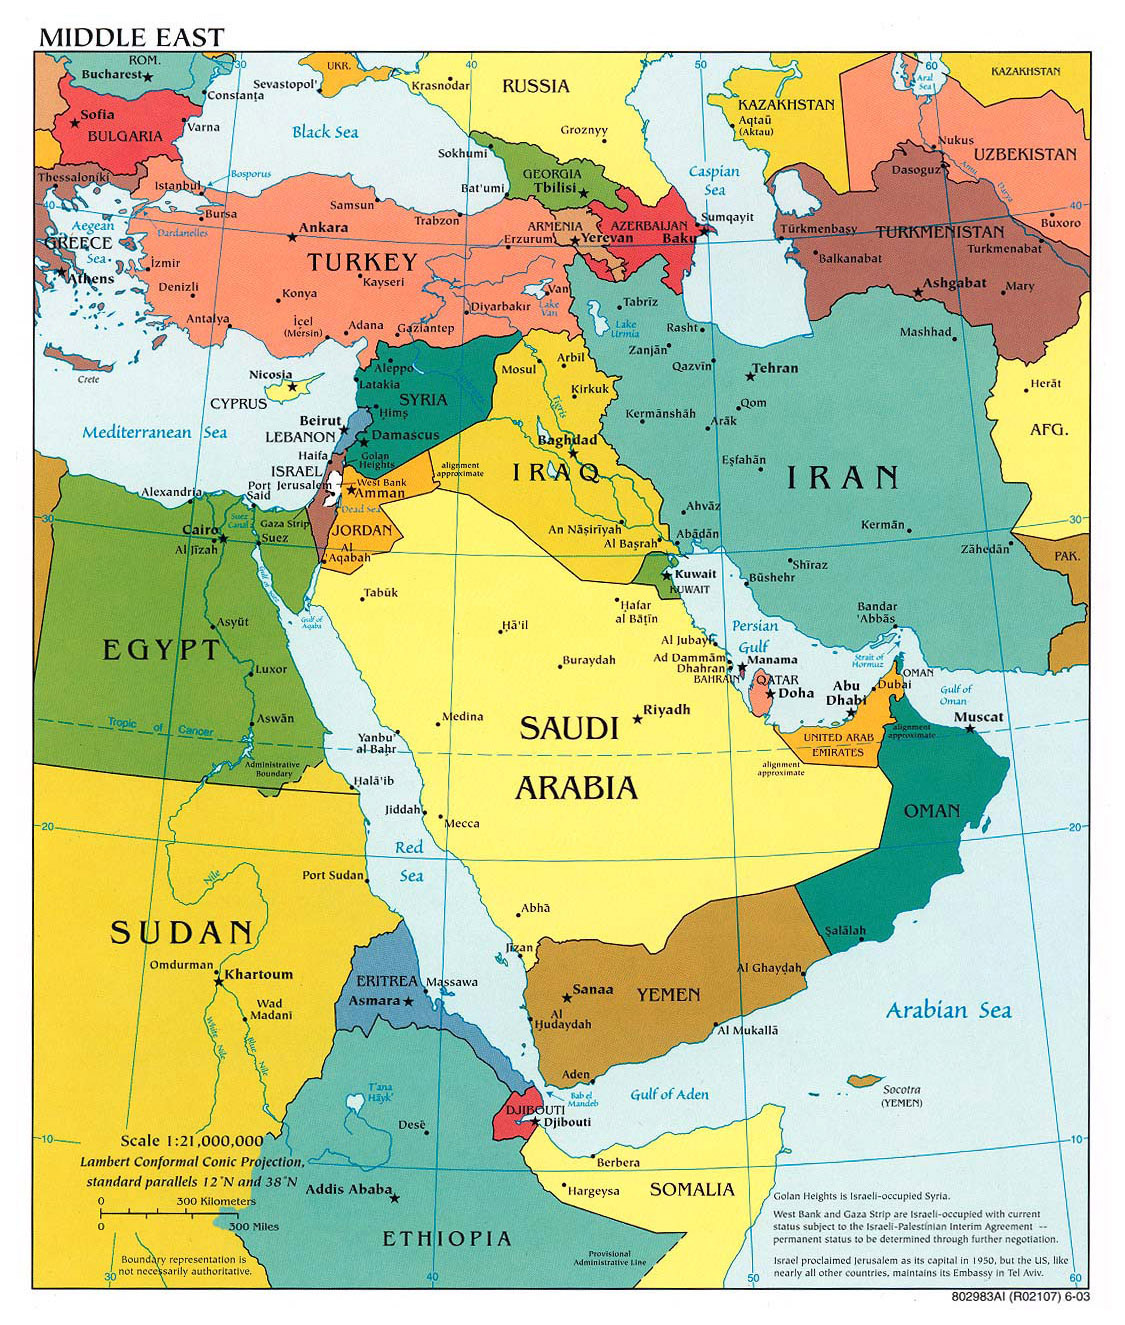 Detailed political map of Middle East with major cities 2003